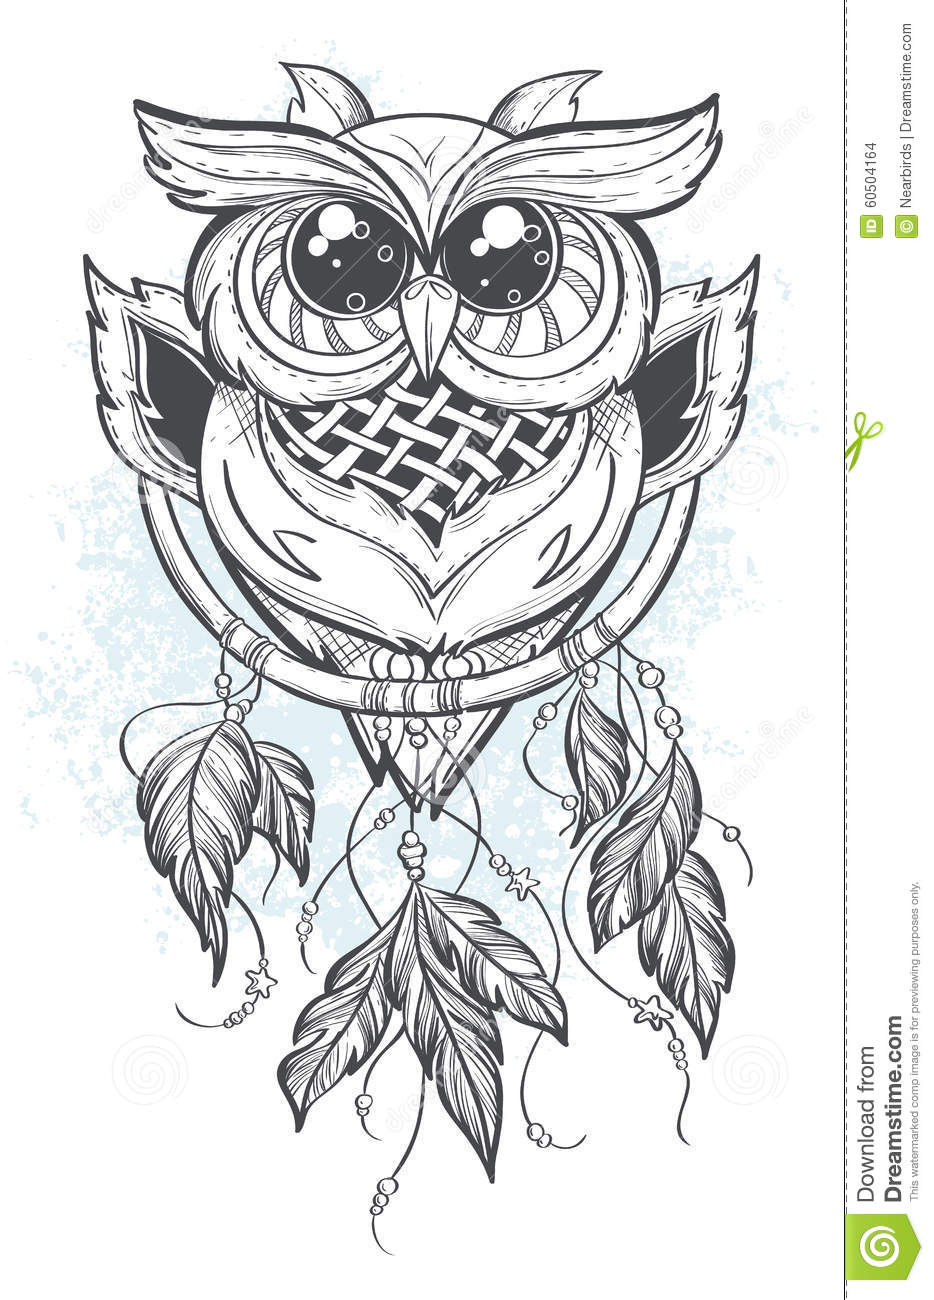 Dreamcatcher Vector Illustration With Owl Feathers Stock